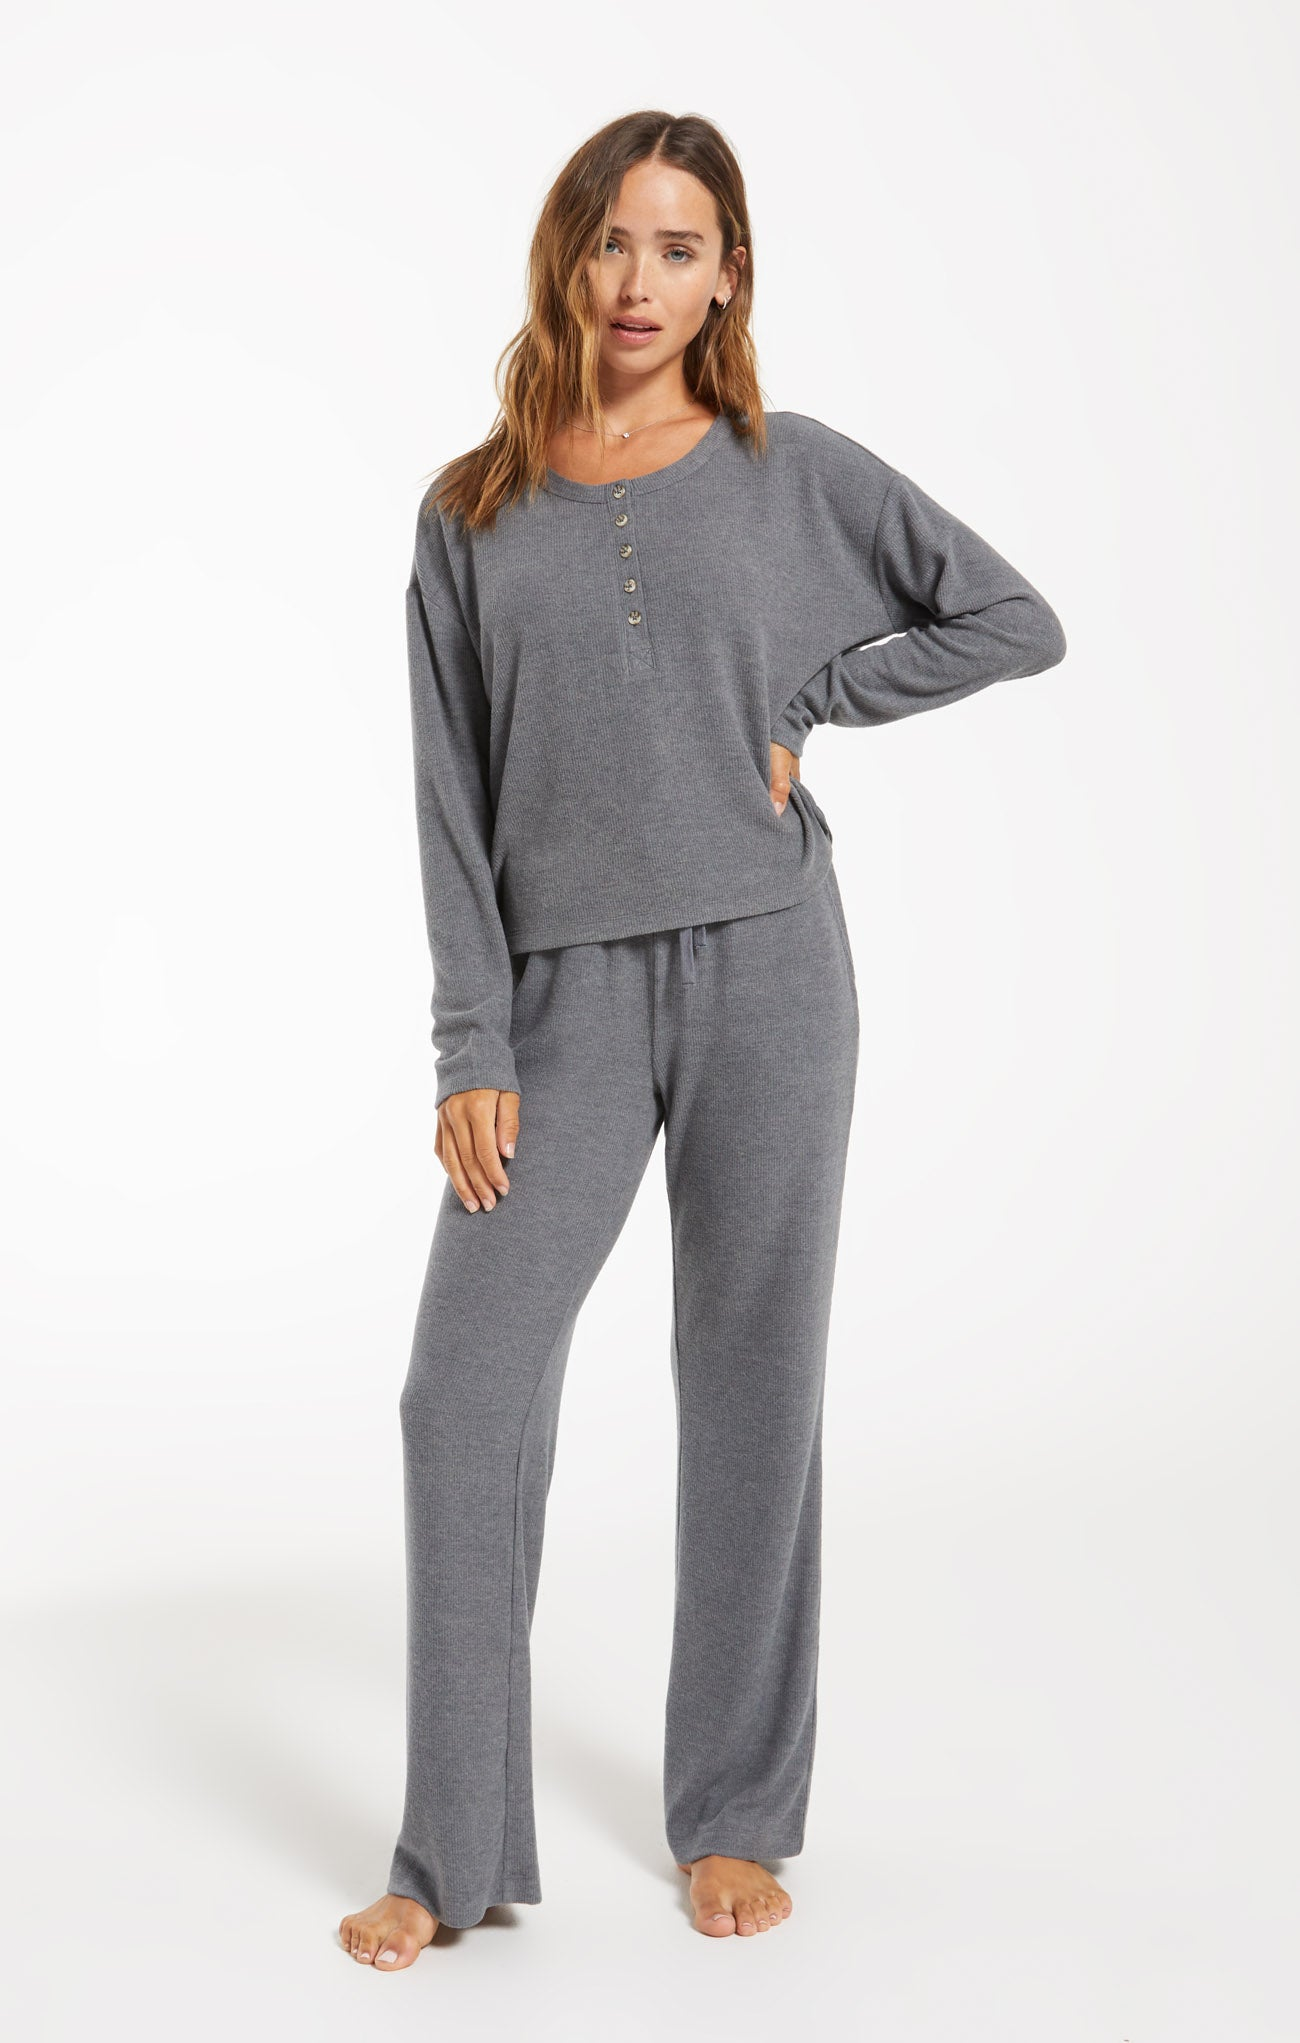 Pants Go With The Flow Pant Pewter